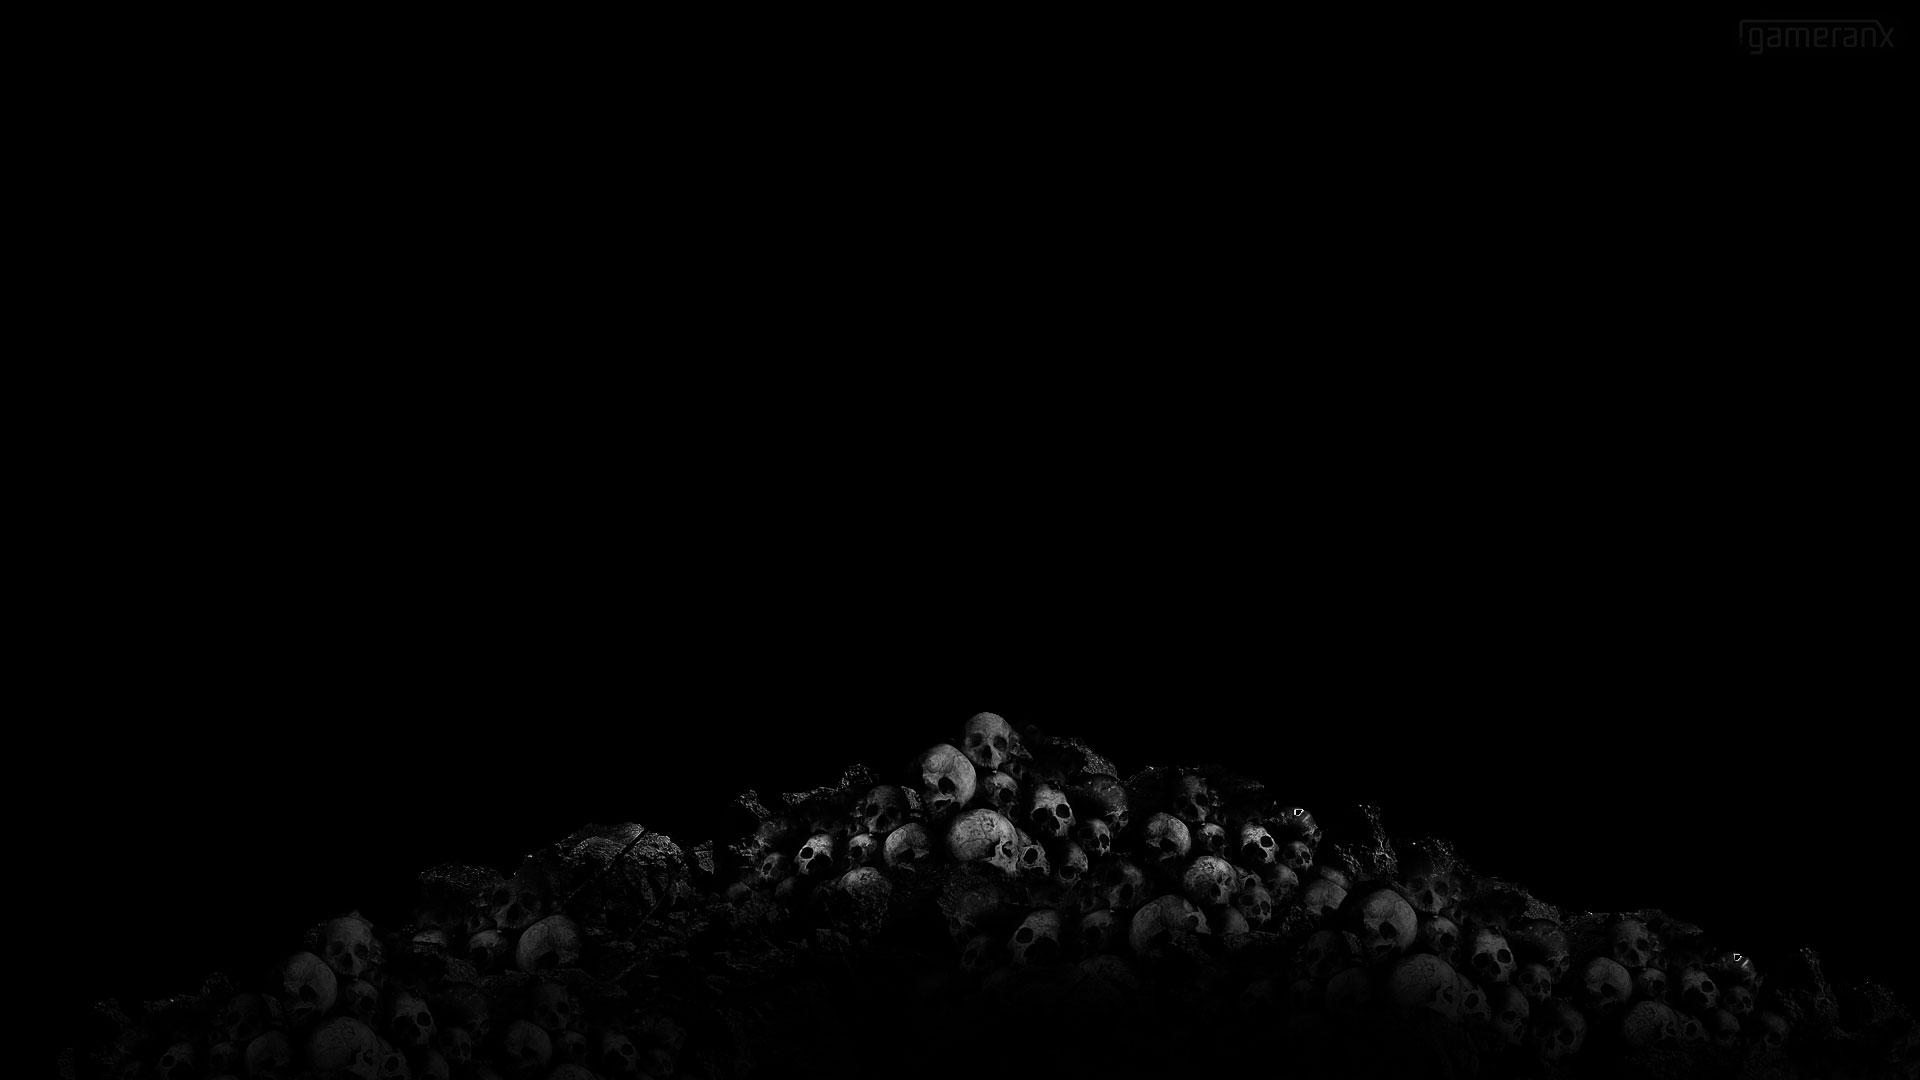 Skulls Full HD Wallpaper and Background Image   1920x1080 ...